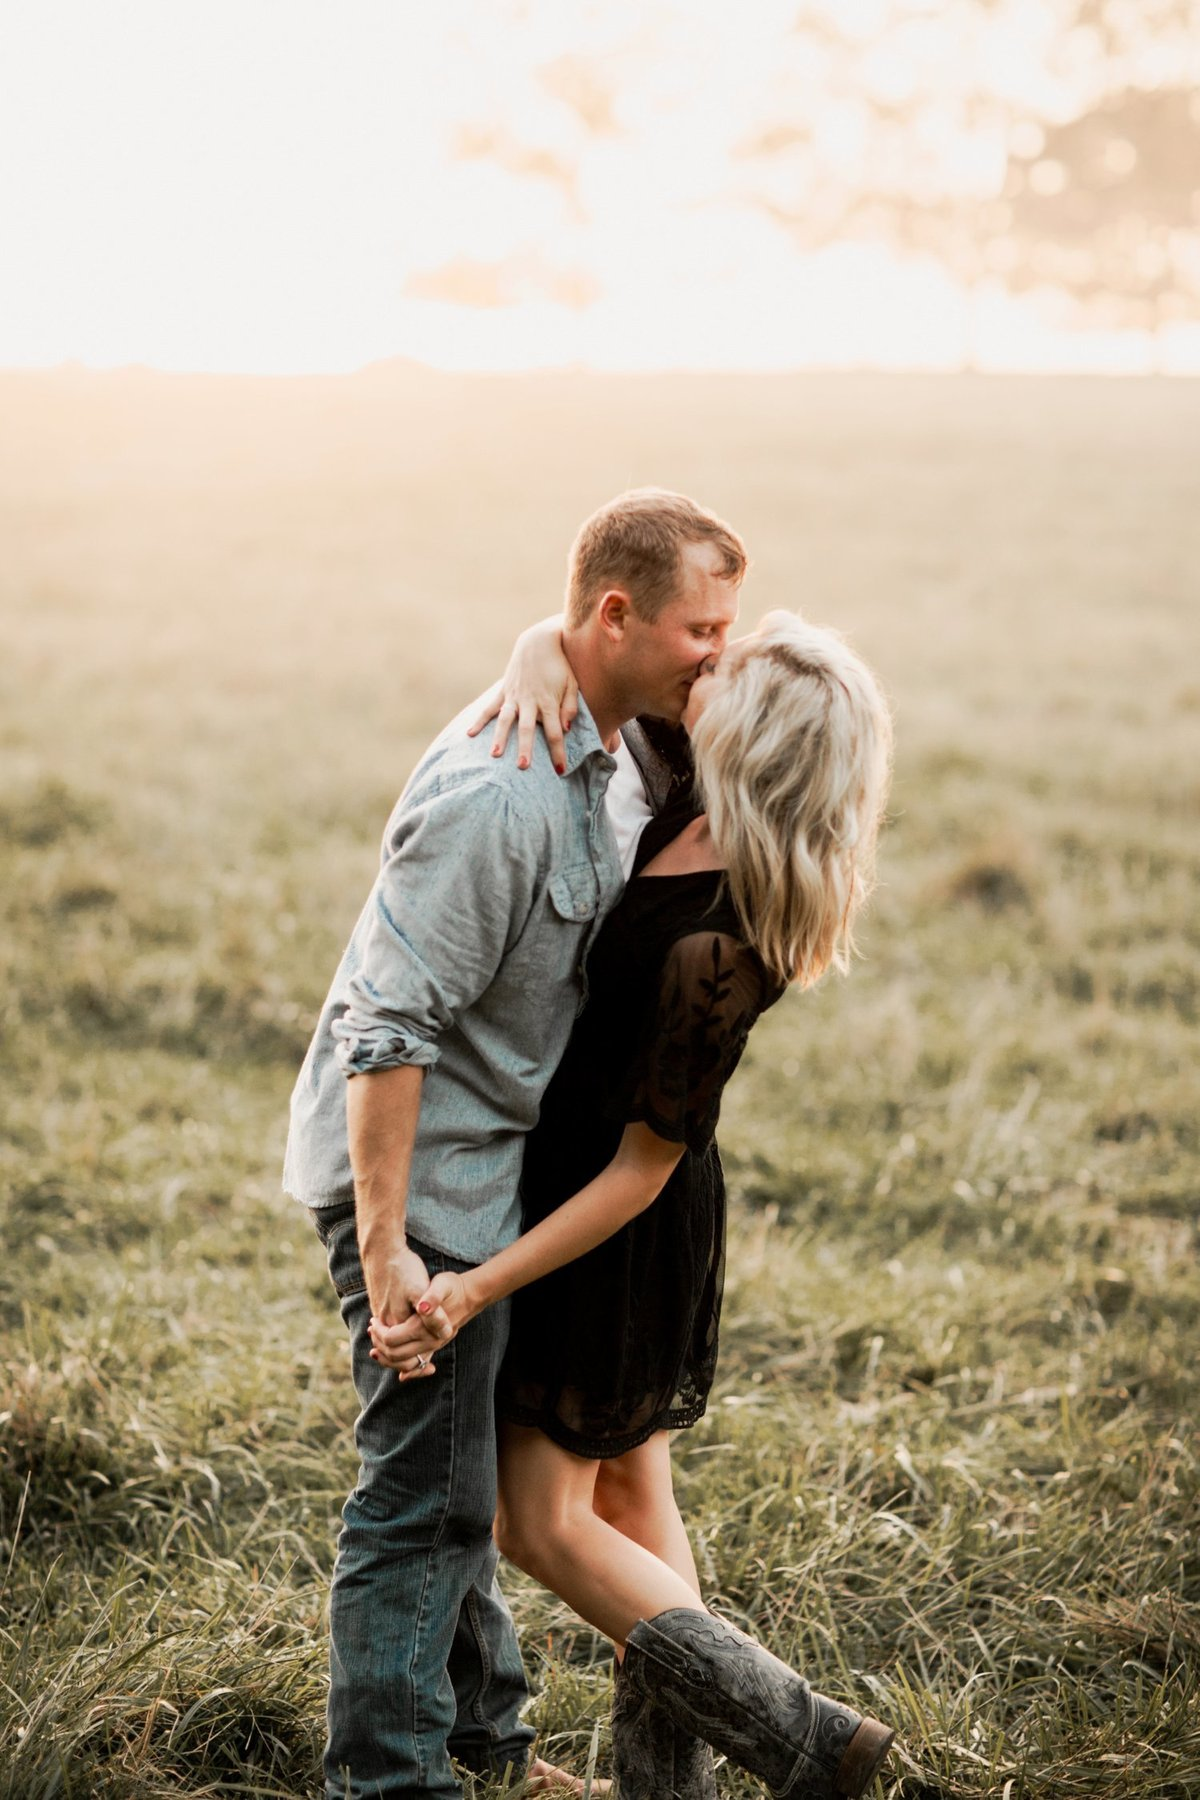 Kansas City Salt Lake City Destination Wedding Photographer_0395